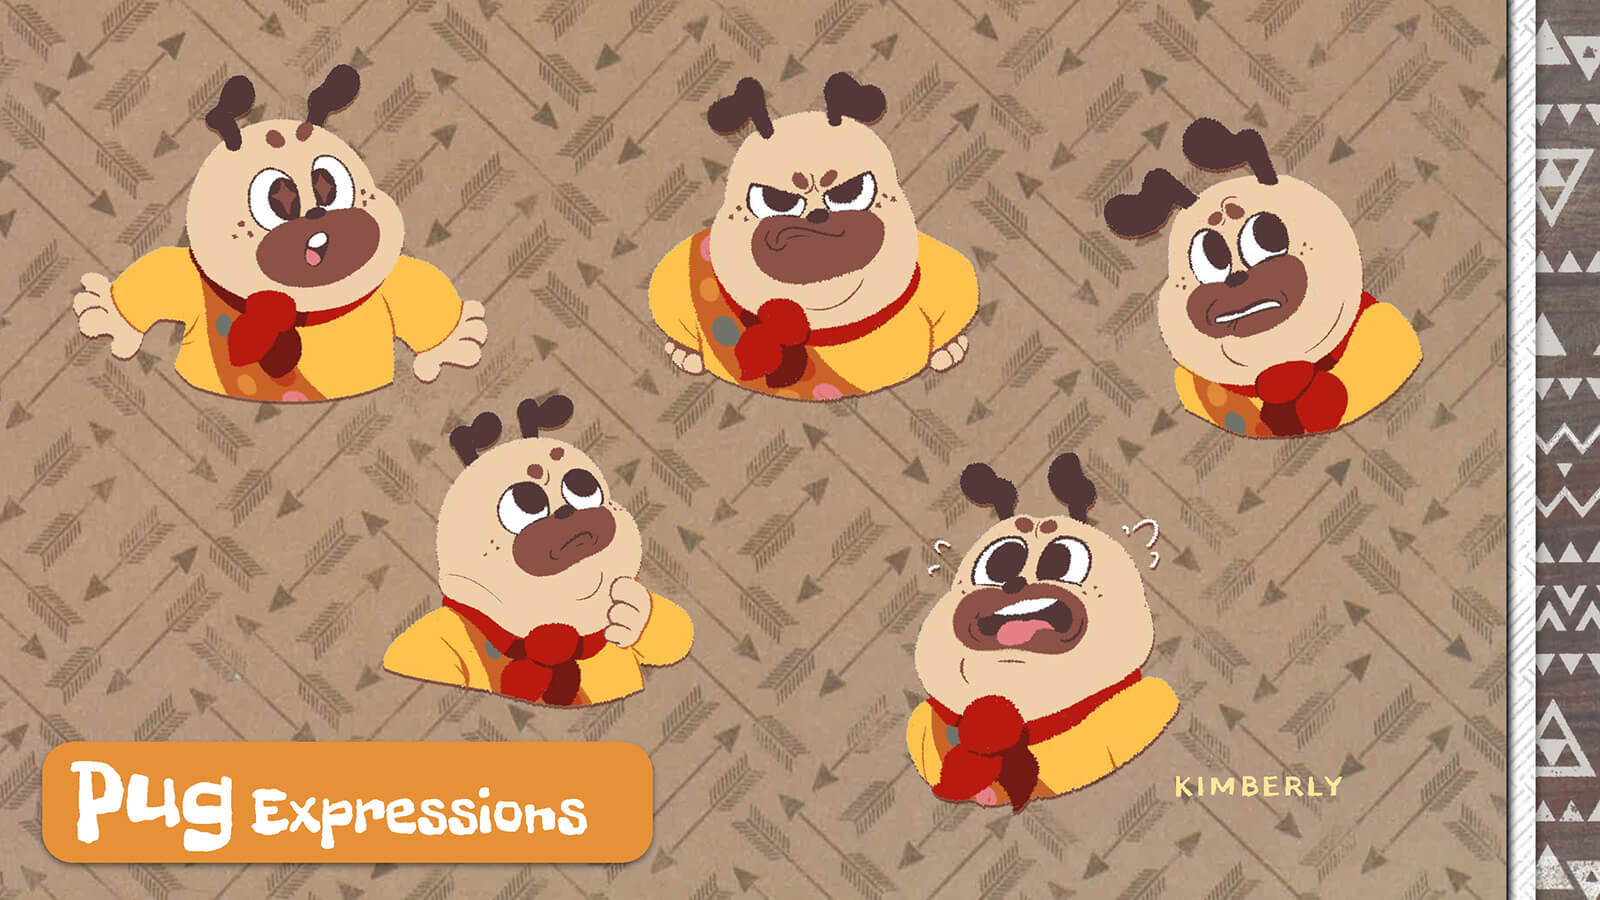 Facial expressions of the character Pug.